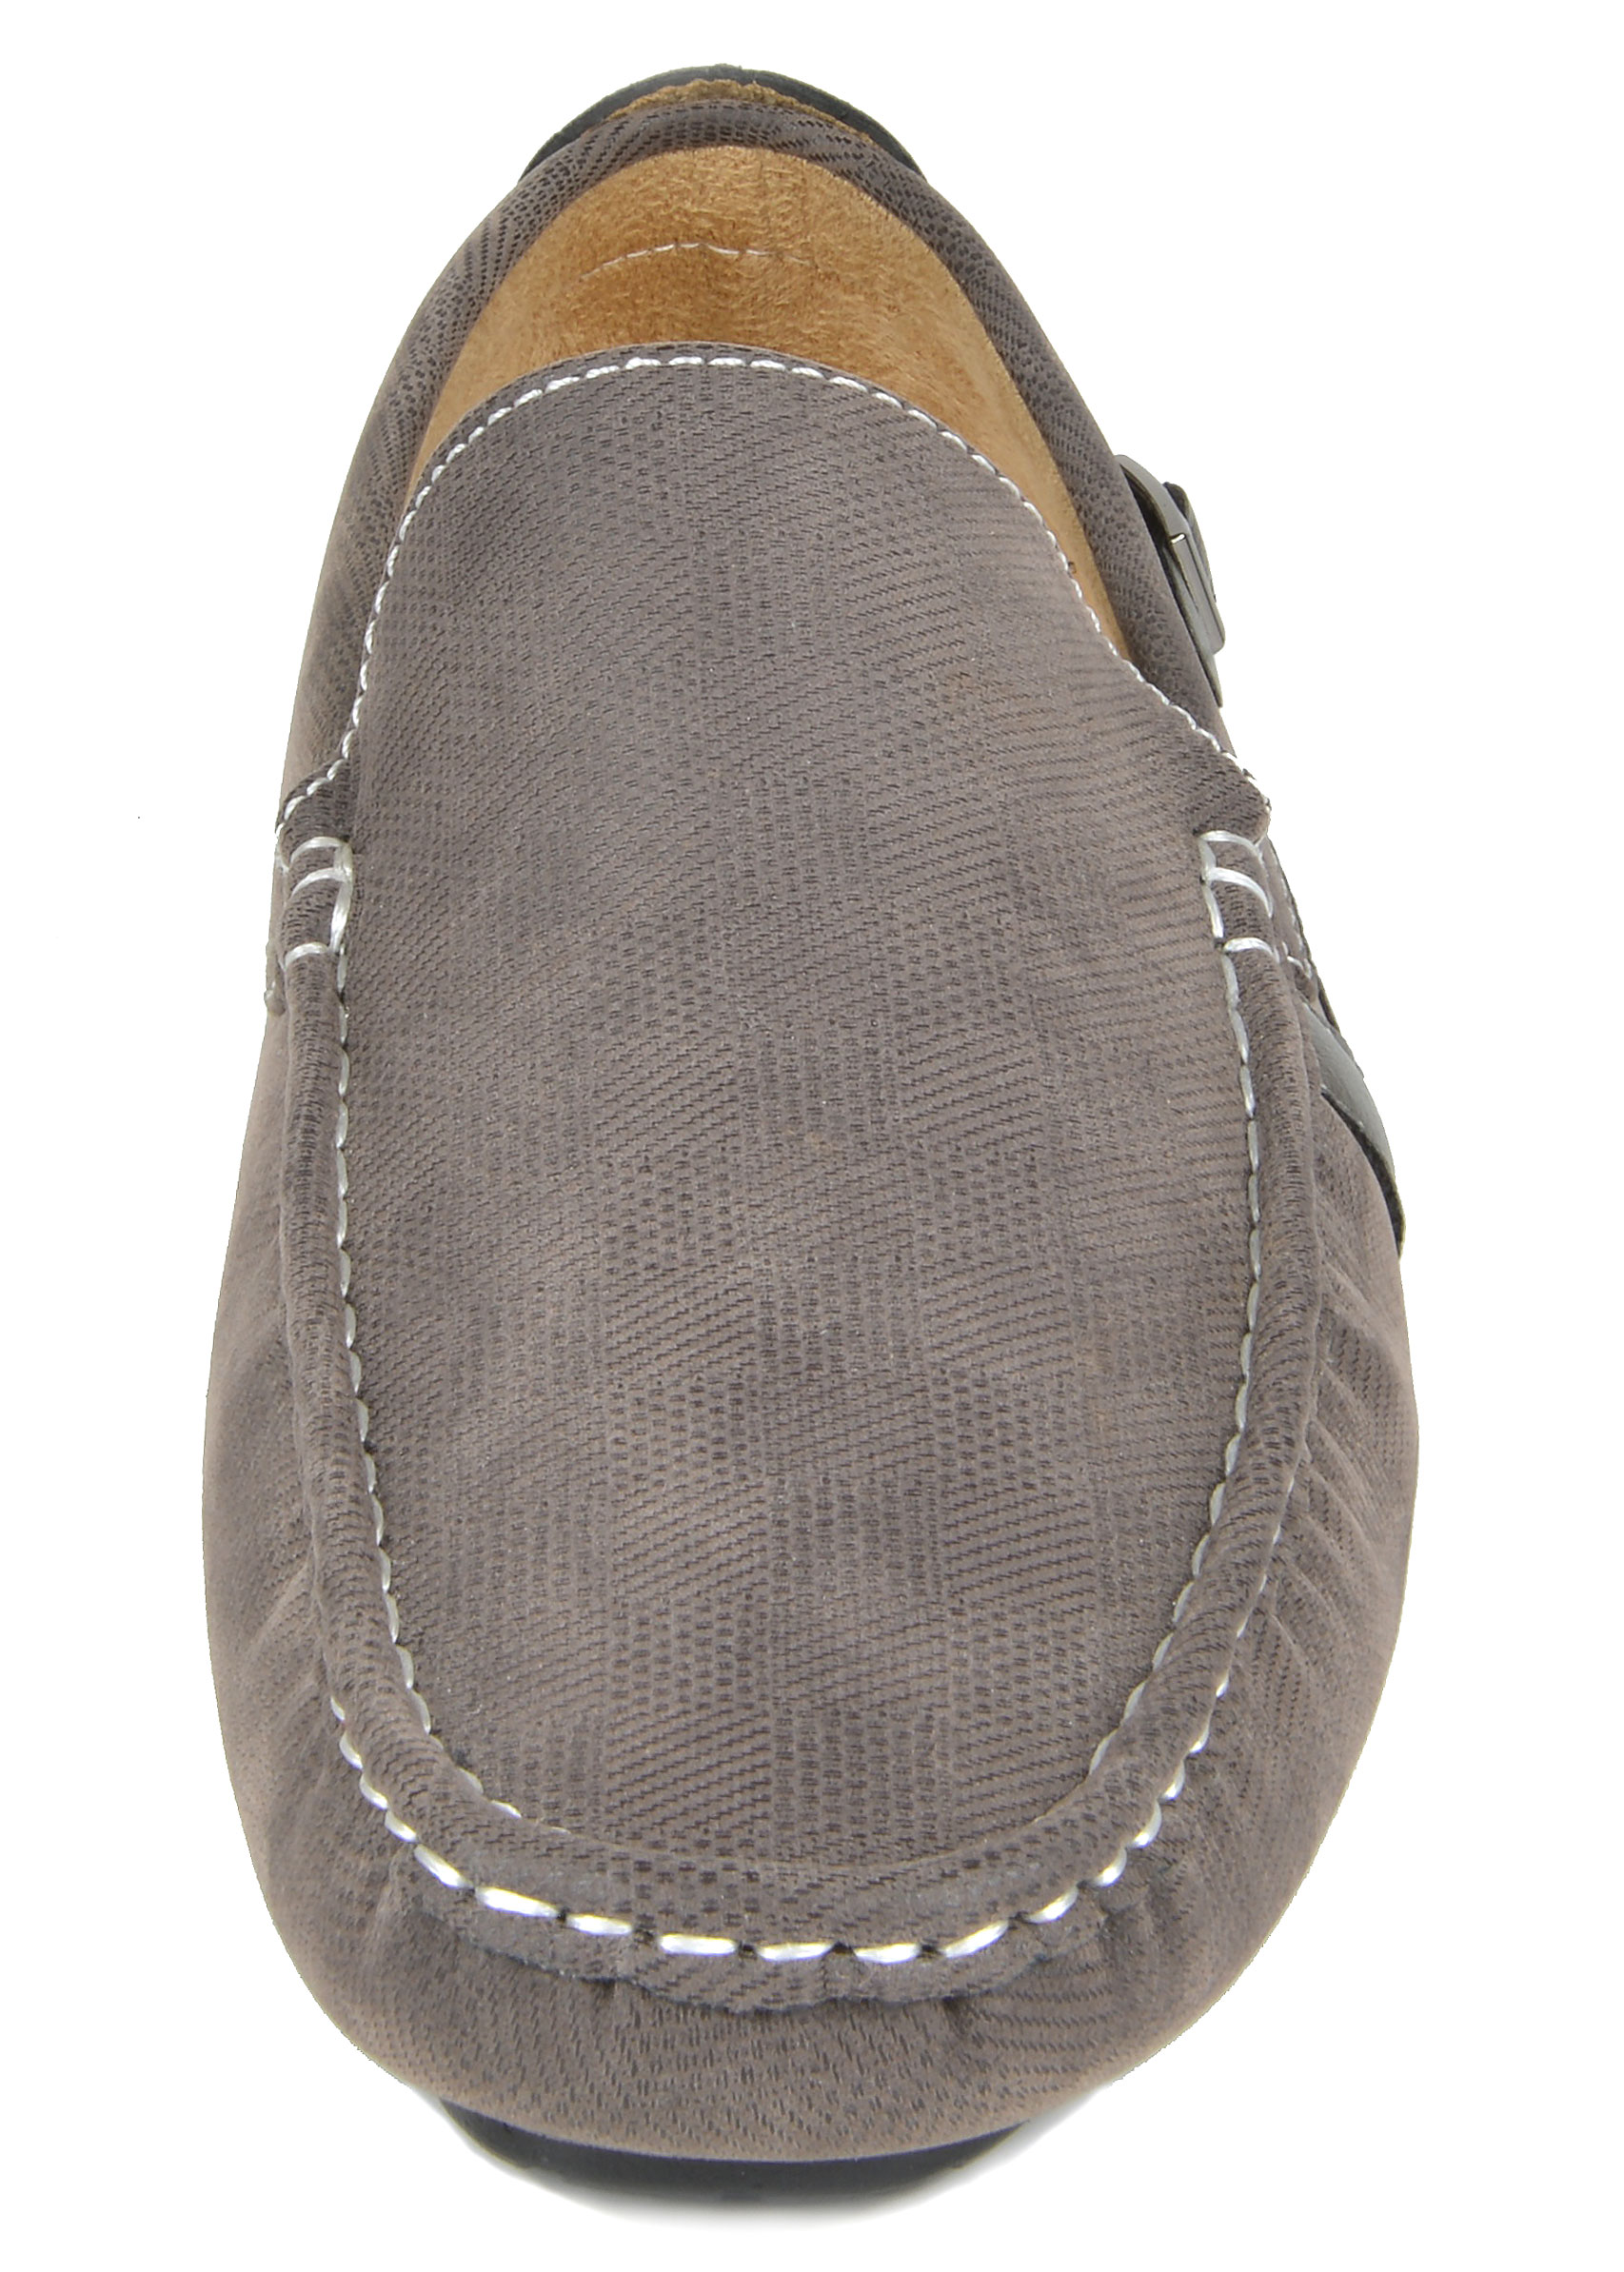 Bruno-Marc-Men-039-s-New-Classic-Fashion-Slip-on-Driving-Casual-Loafers-Boat-Shoes thumbnail 129